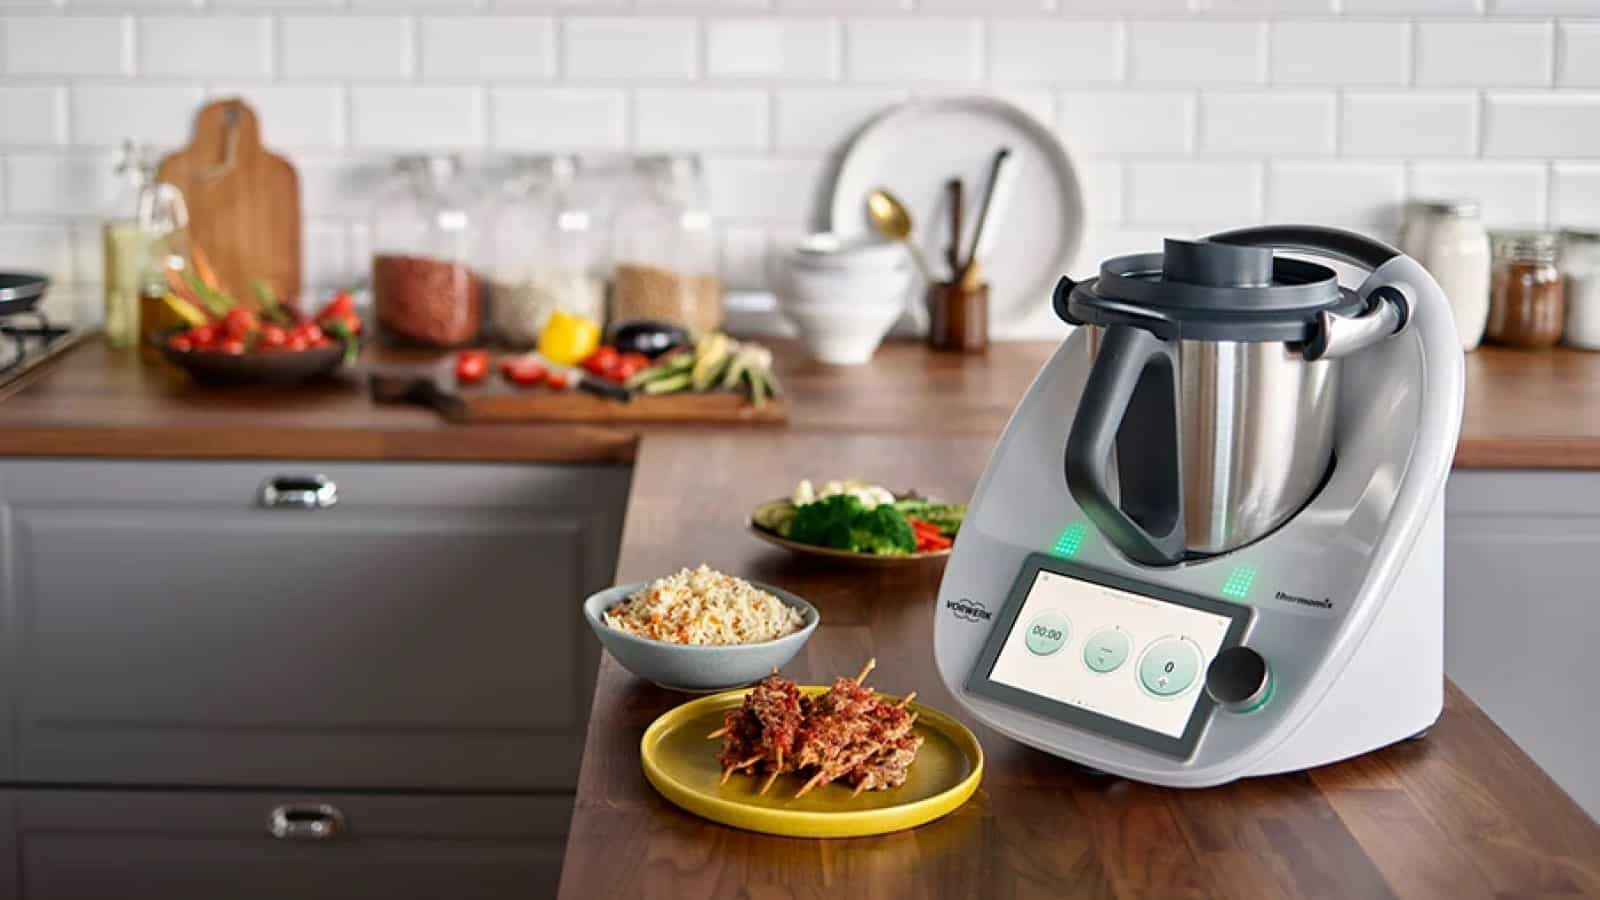 thermomix tm6 smart cooking device on kitchen counter